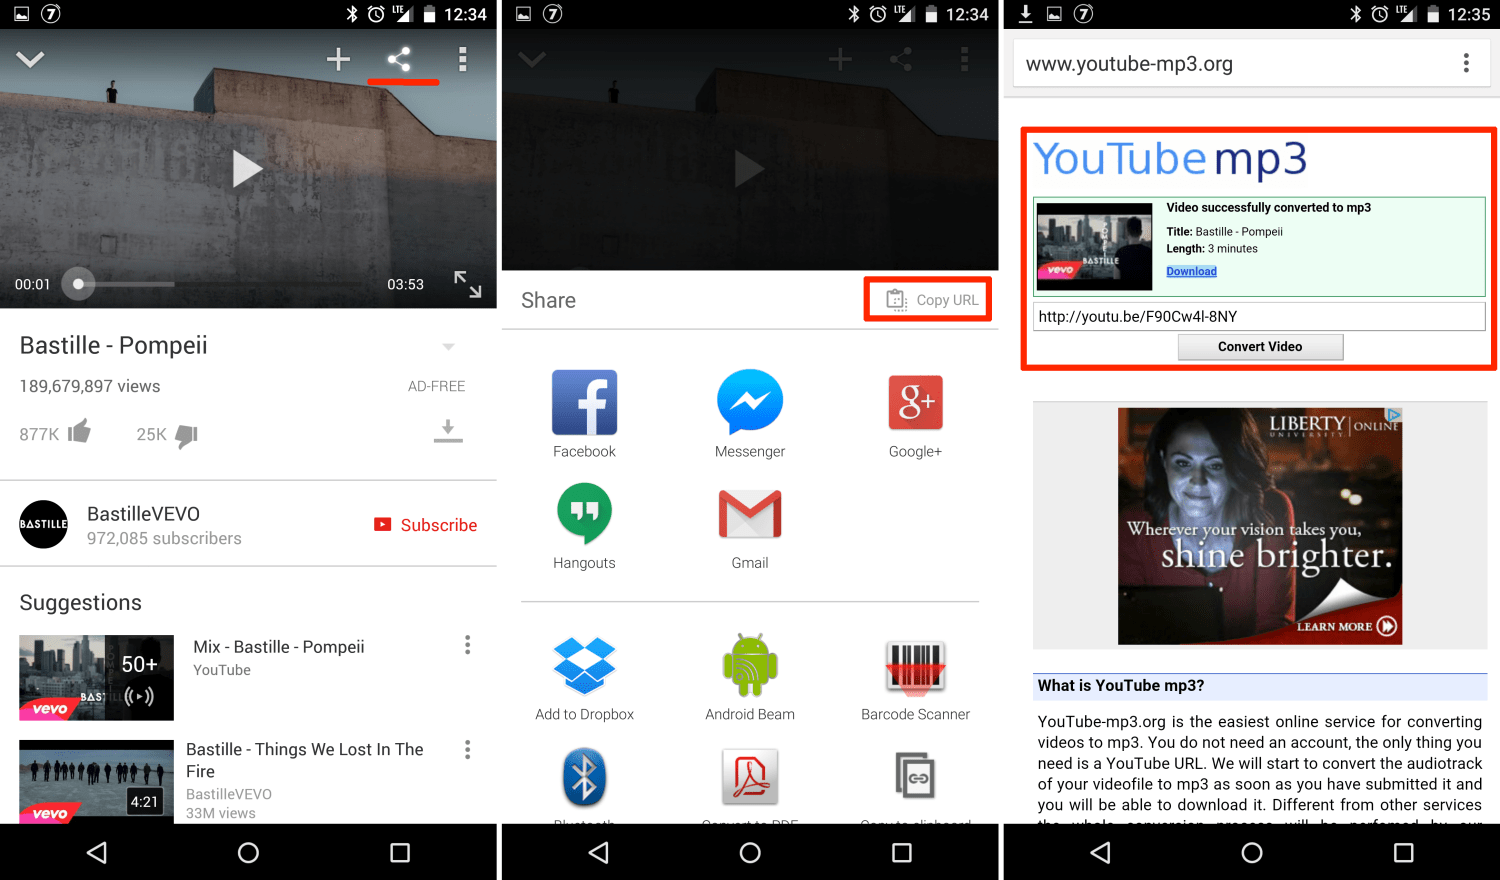 How to Download YouTube Movies & Music on Android